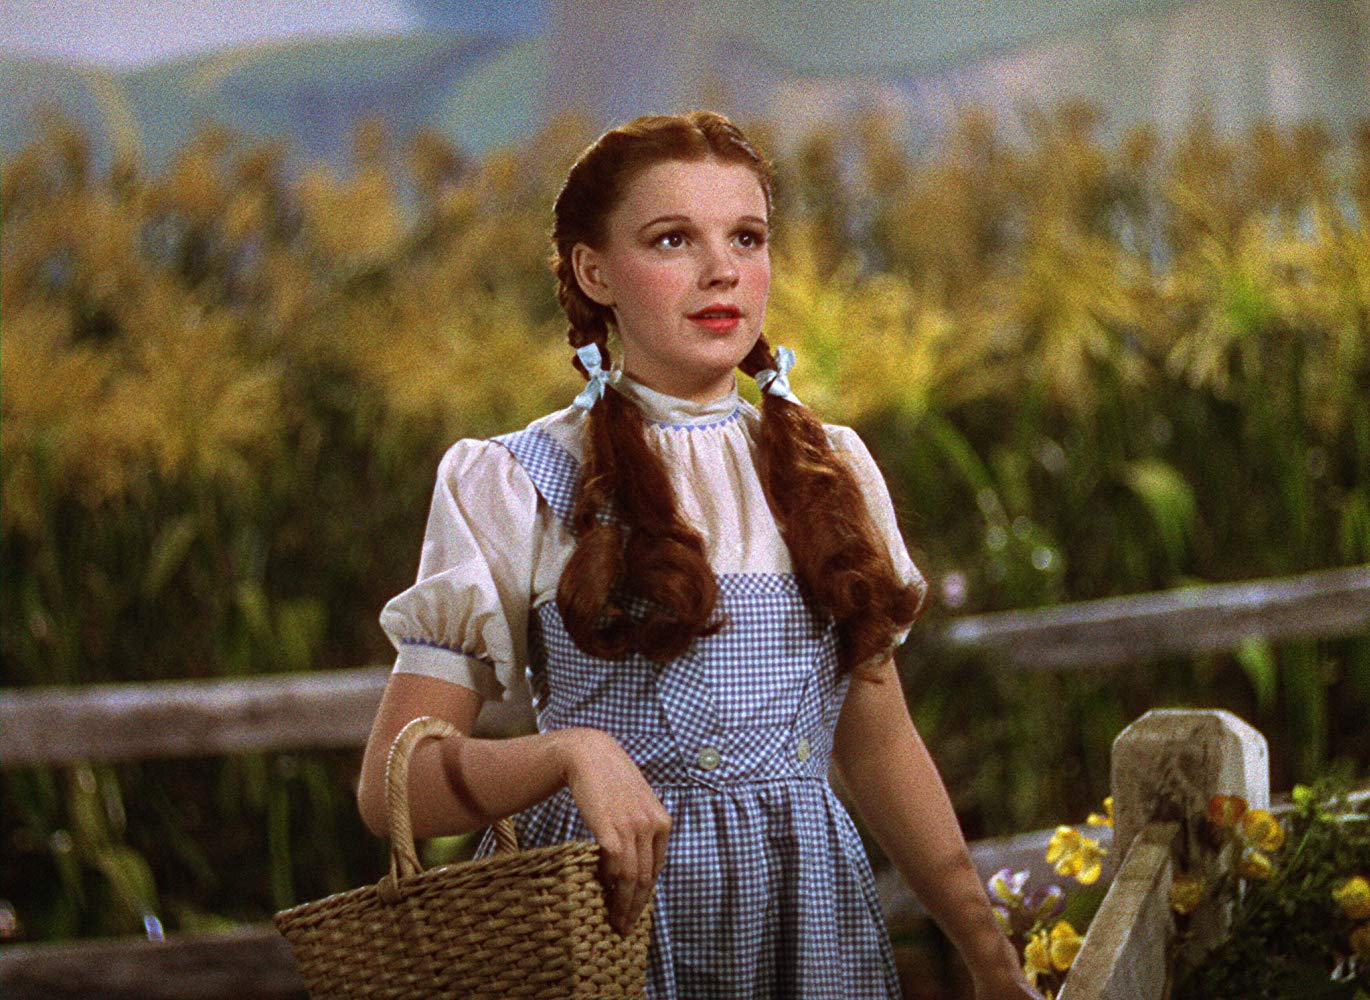 Judy Garland as Dorothy Gale in The Wizard of Oz (1939)